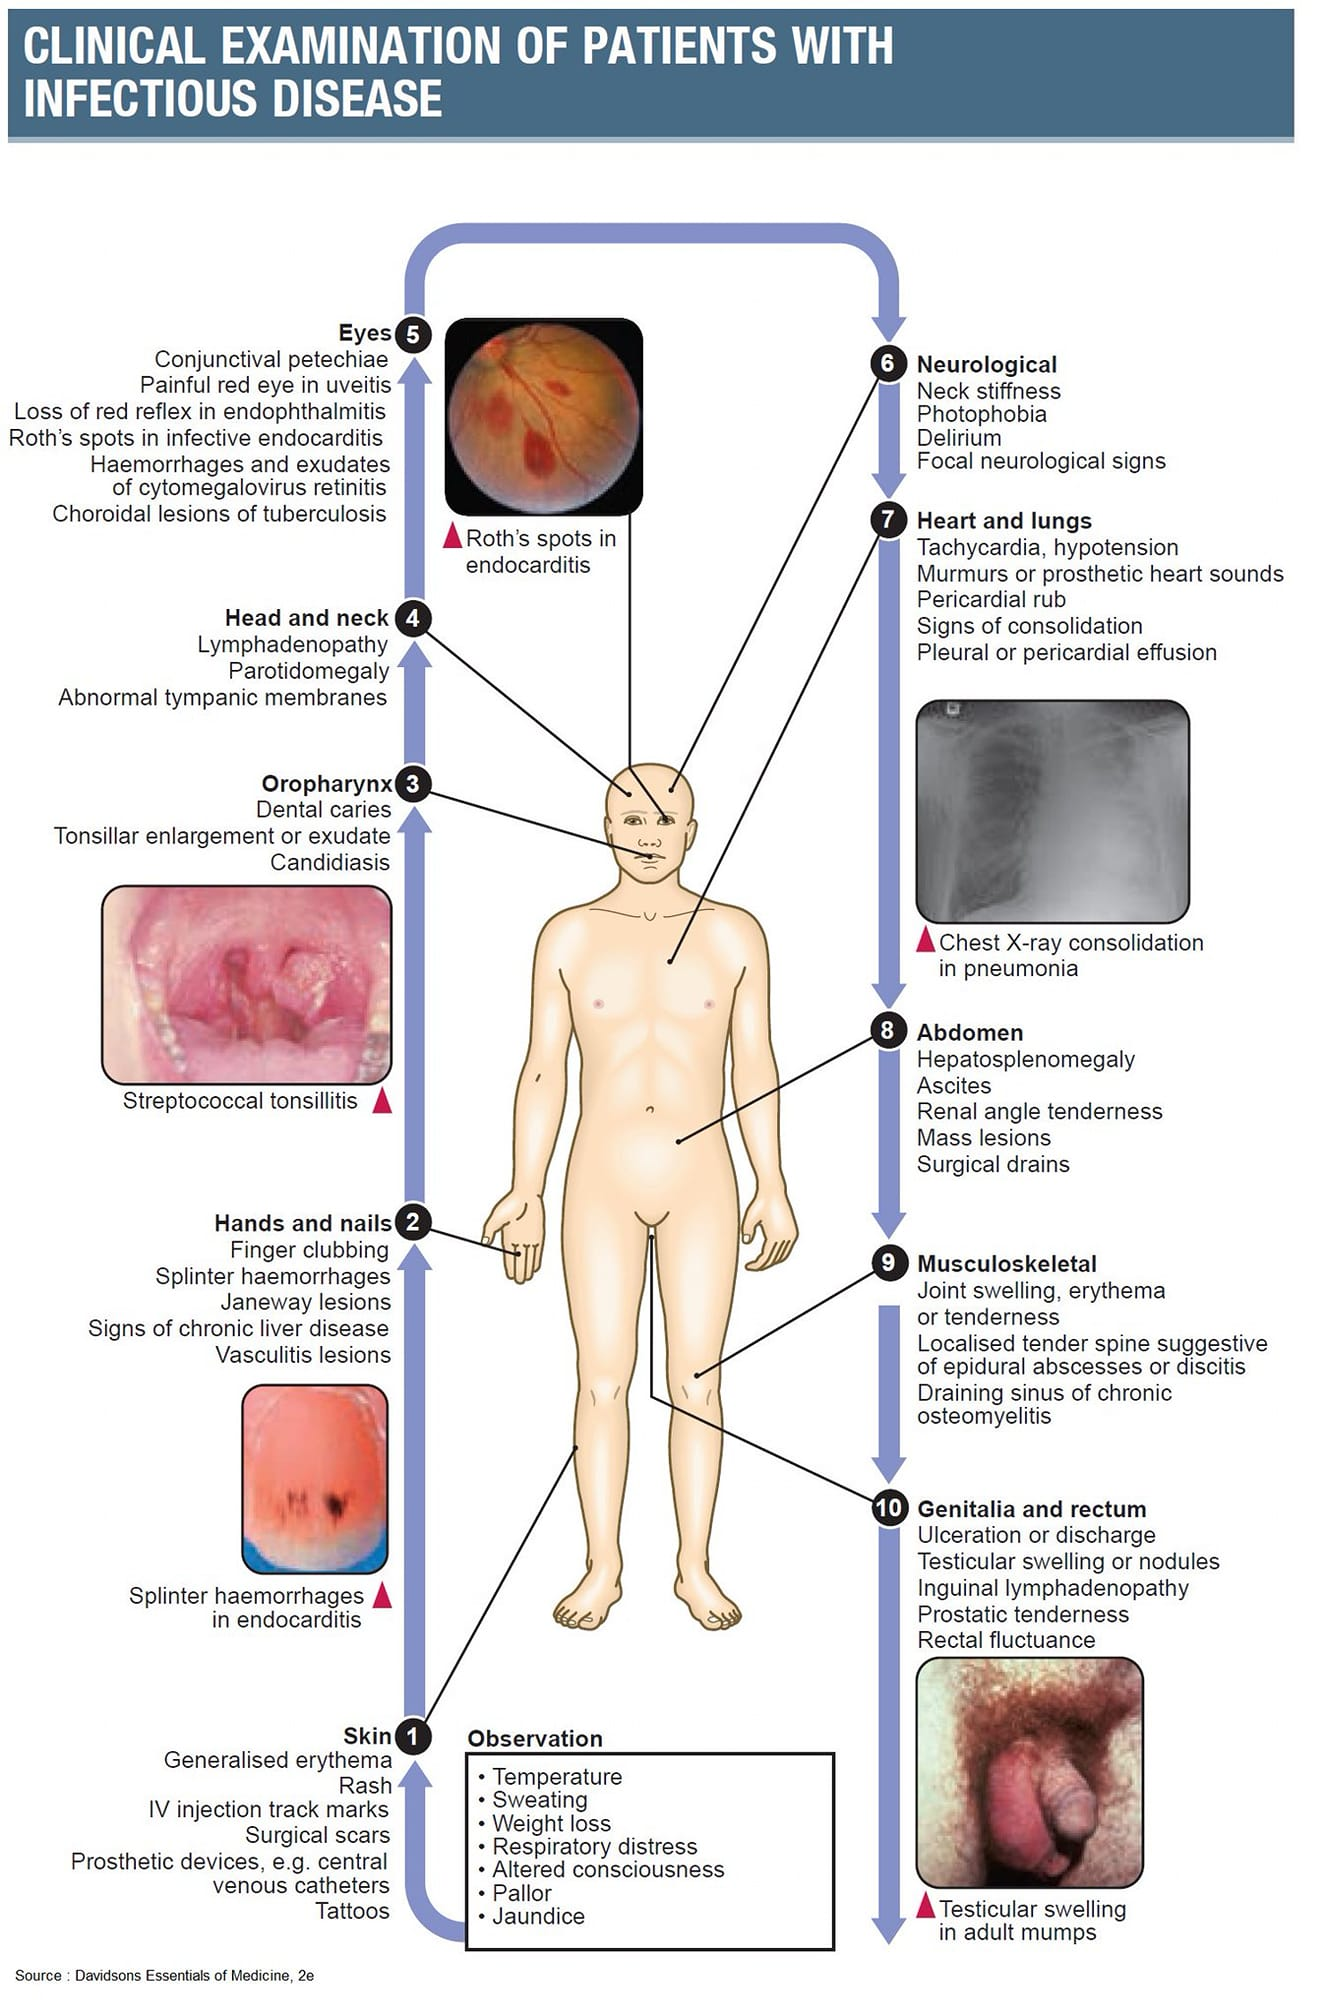 Clinical examination of patients with infectious disease